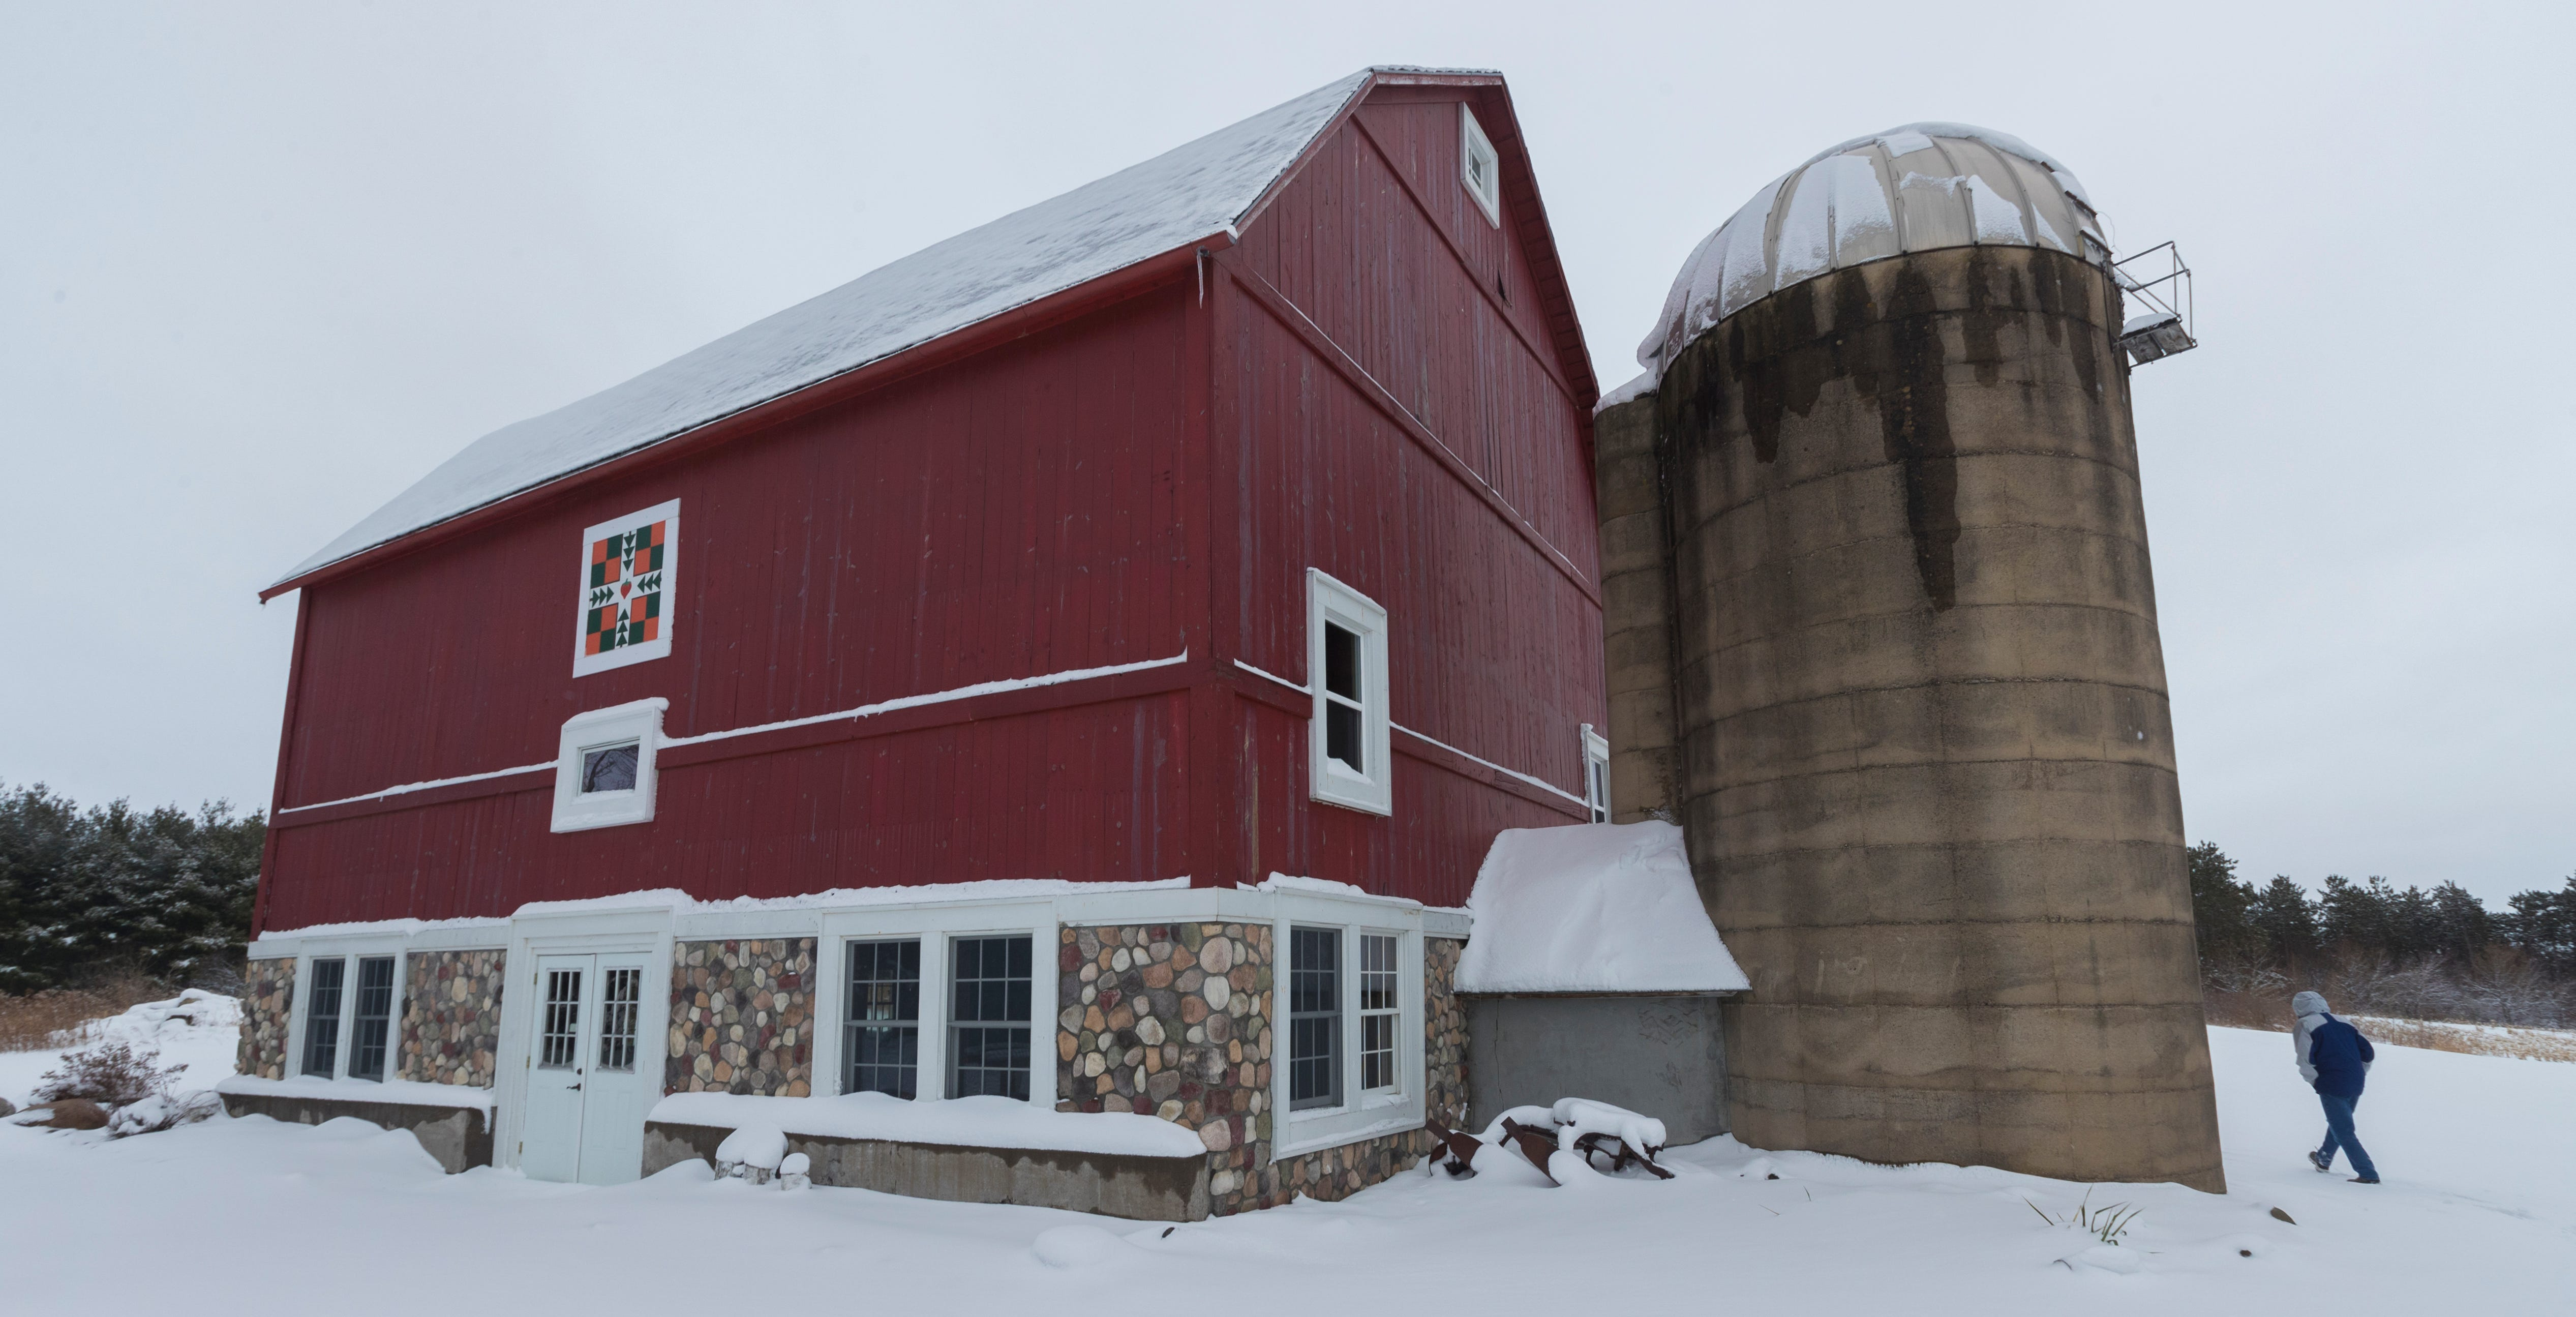 Former dairy farmer Greg Zwald walks to the renovated barn he uses as an event space at his White Pine Berry Farm.